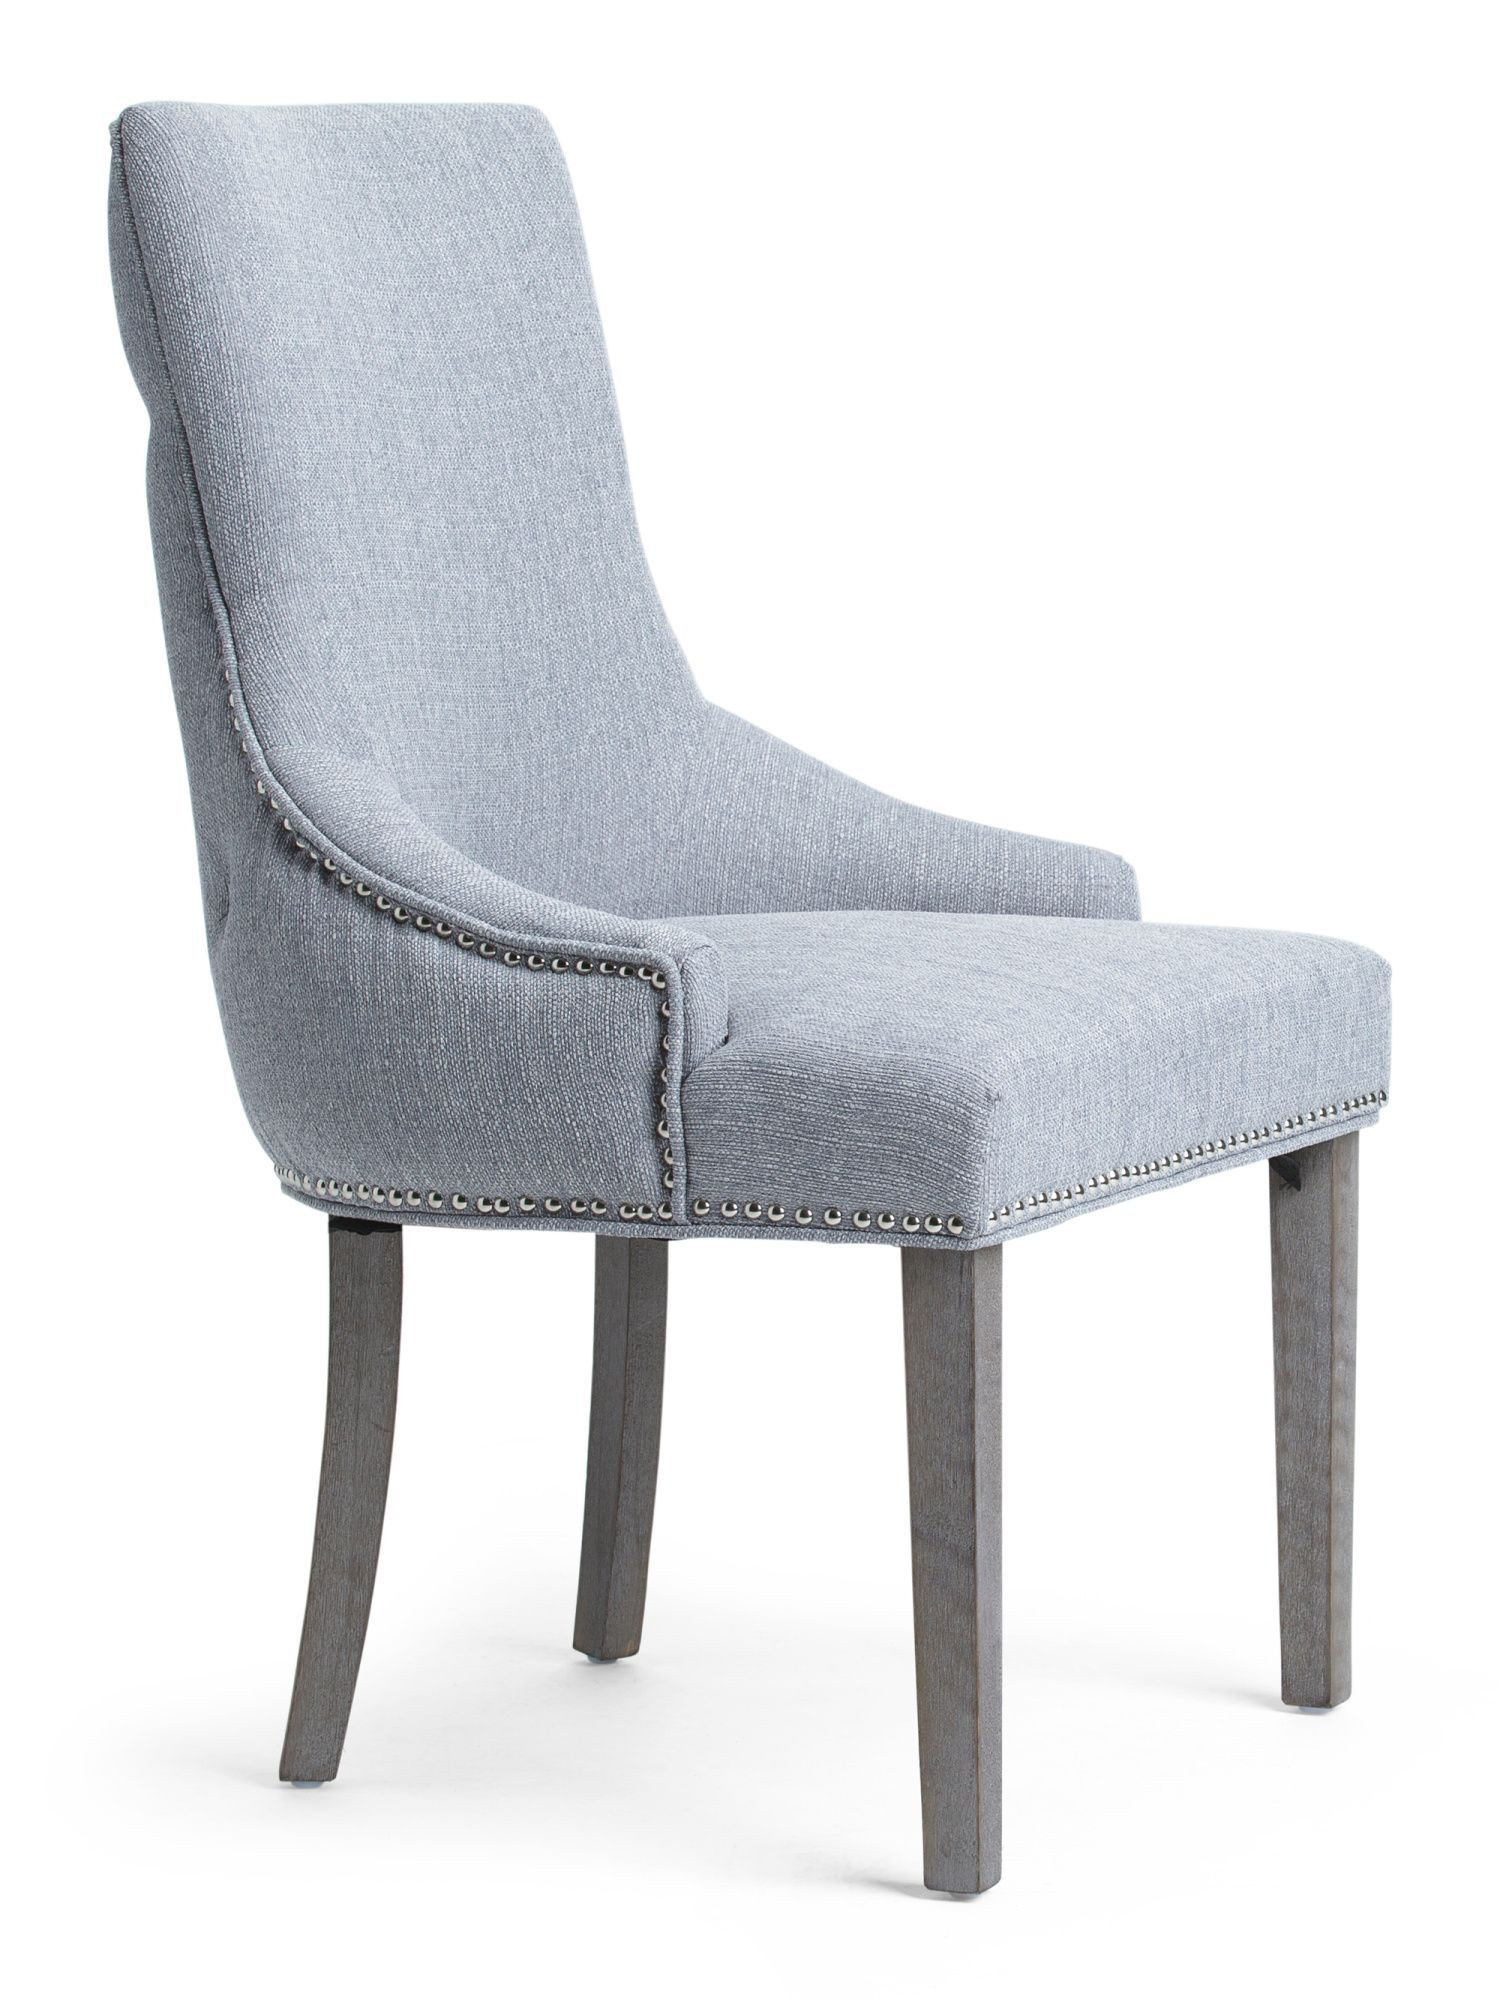 Sonya stallion accent chair products pinterest products